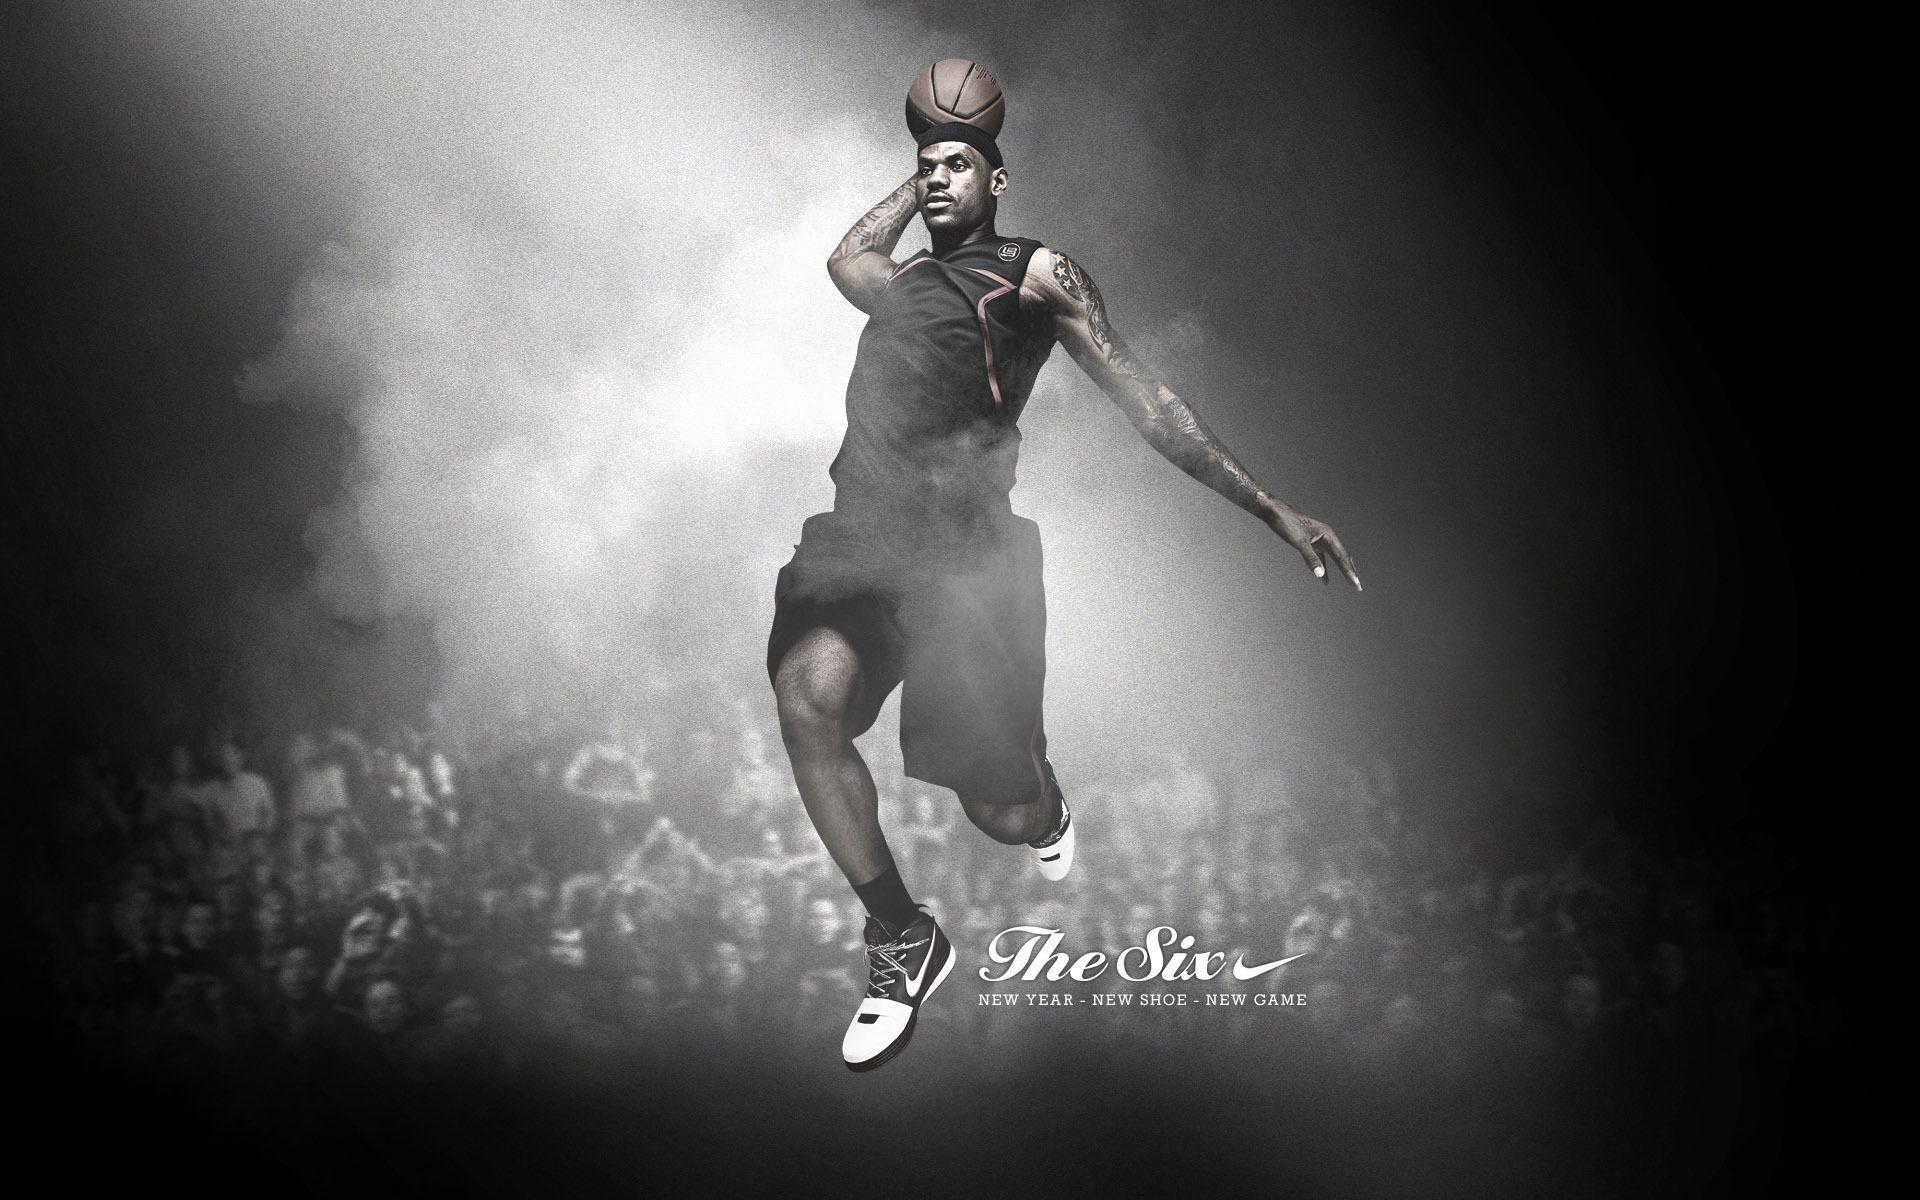 Lebron James Wallpapers - Full HD wallpaper search